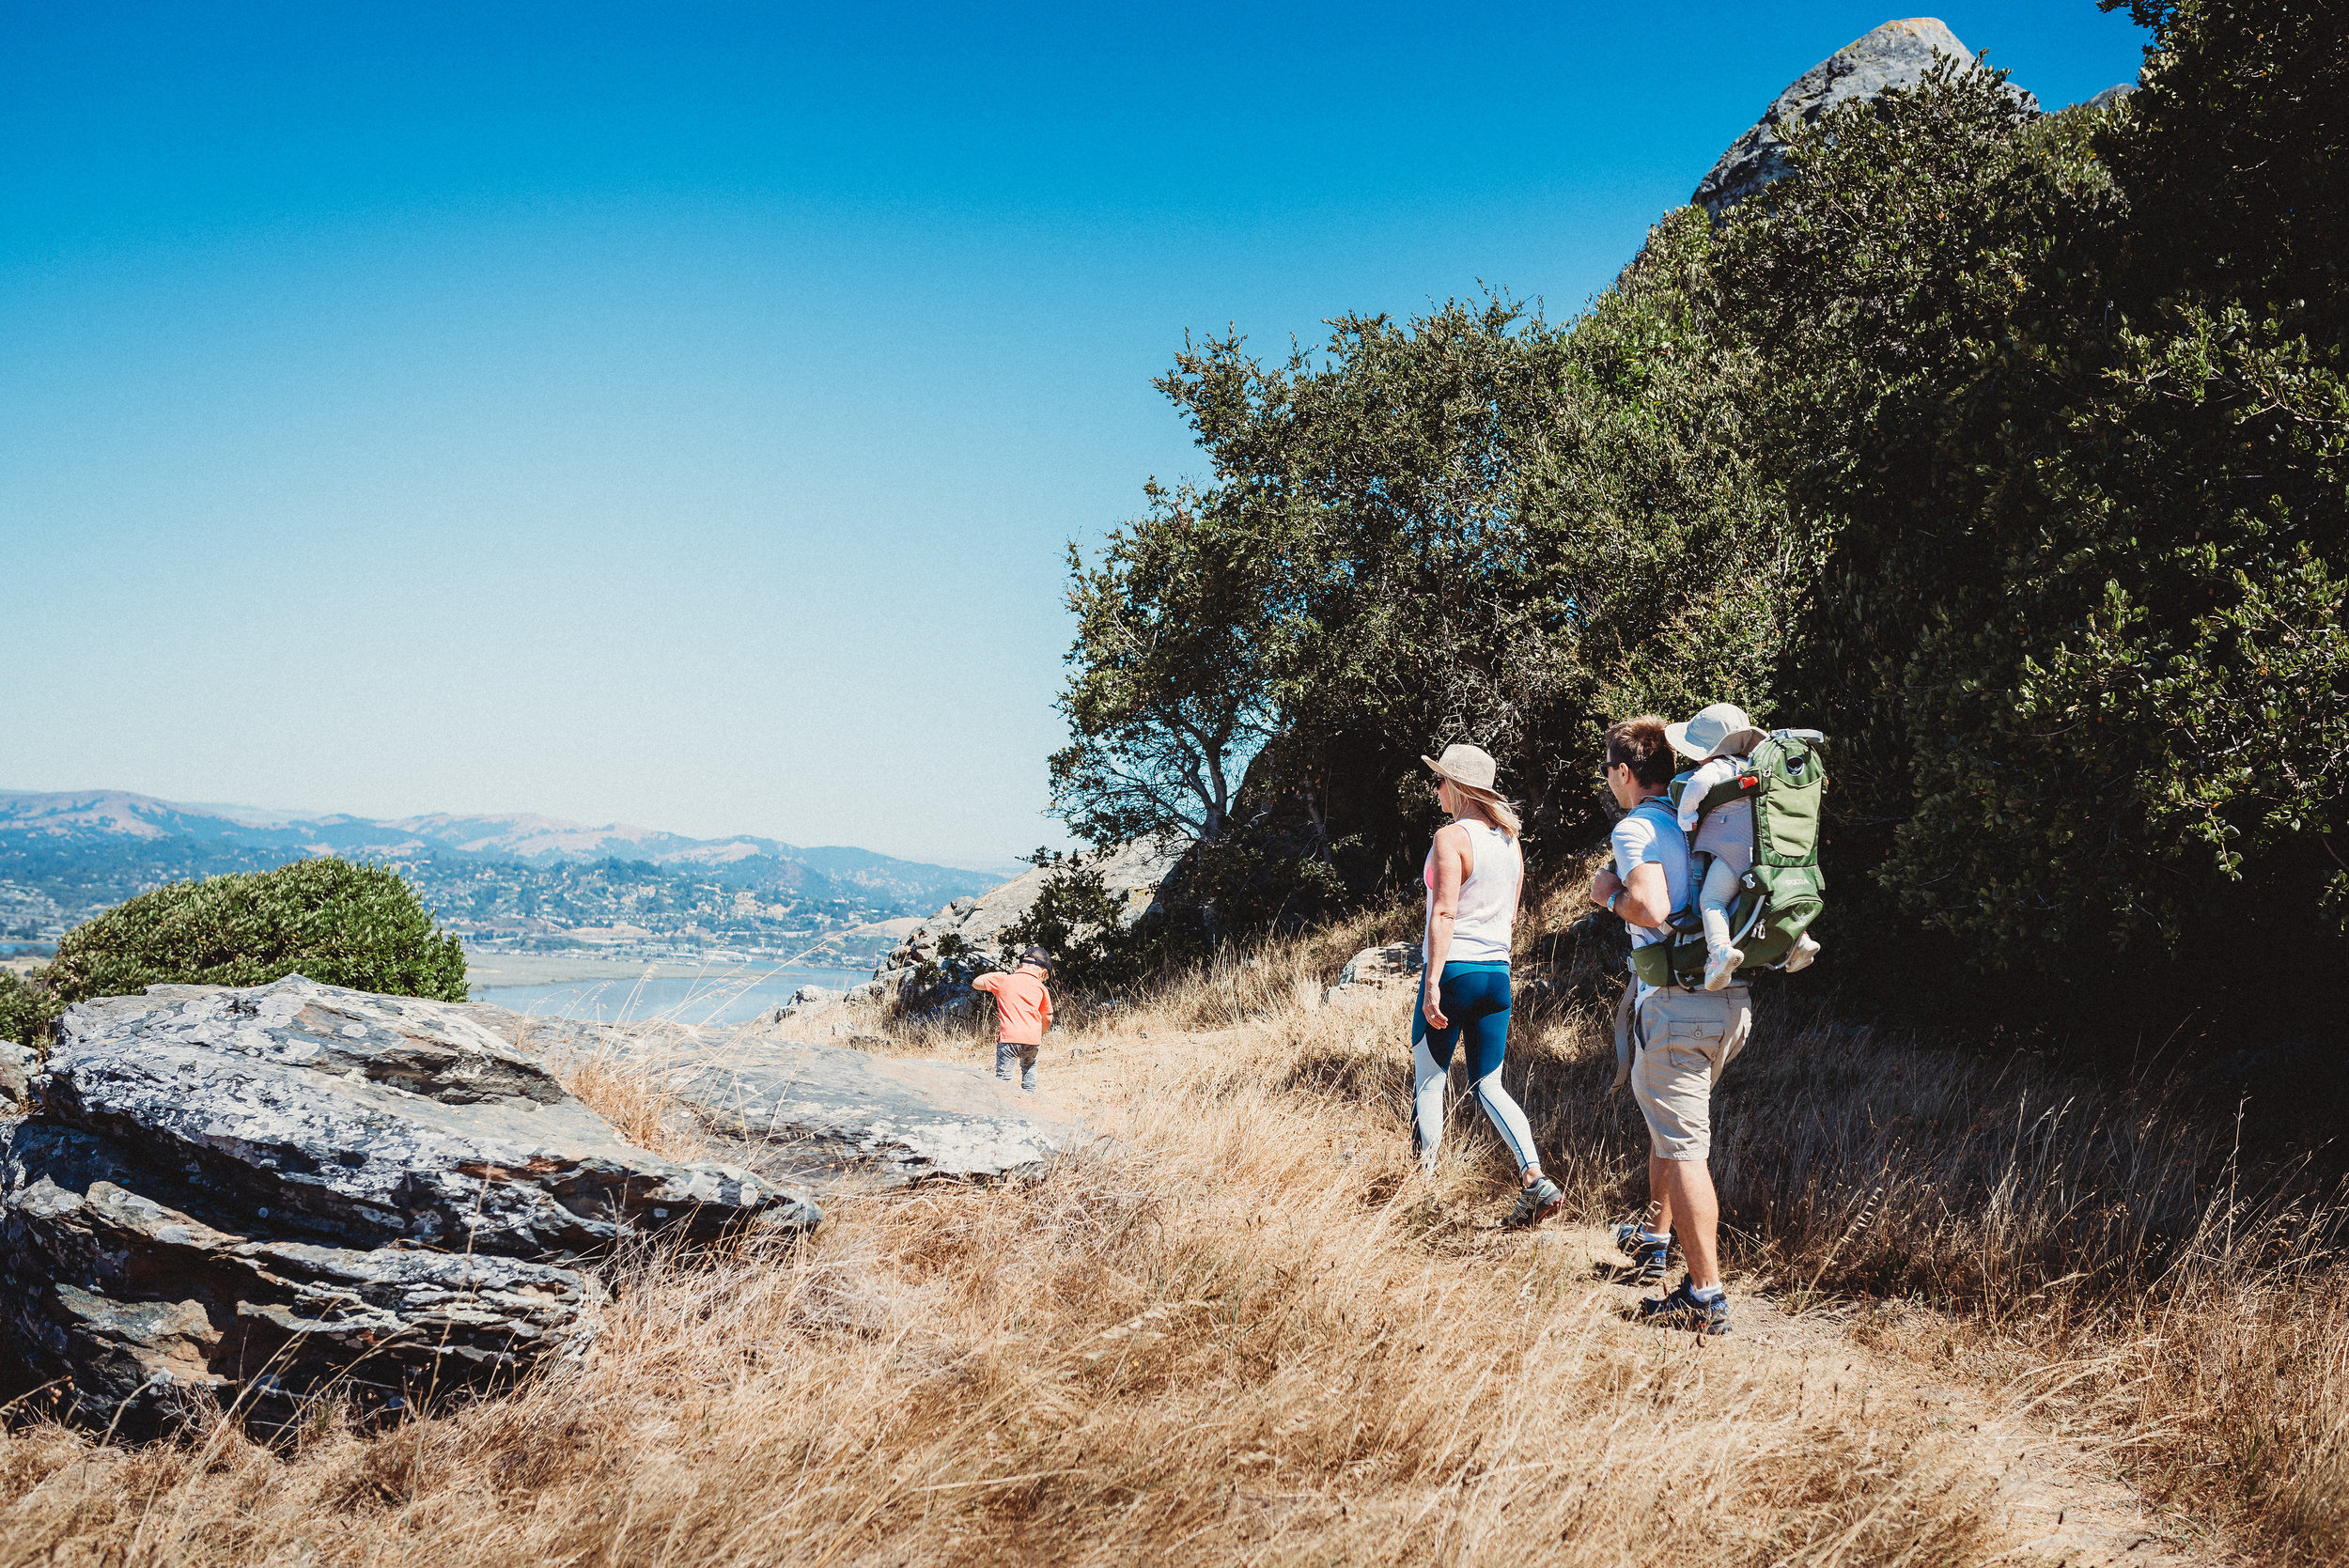 sunday morning family hike family time quality time california mountains hiking6.jpg